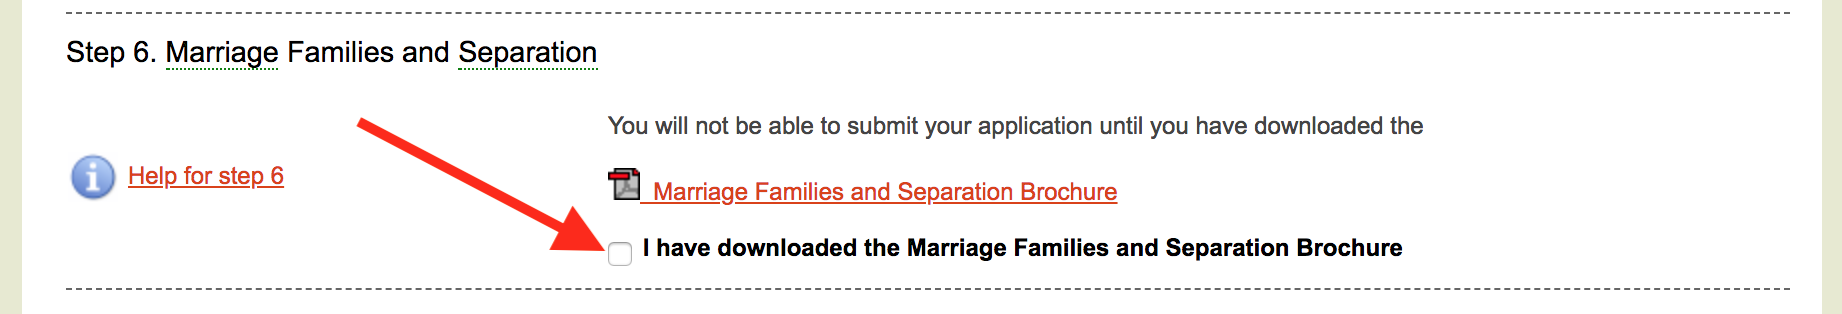 Marriage, families and separation brochure - commonwealth courts portal